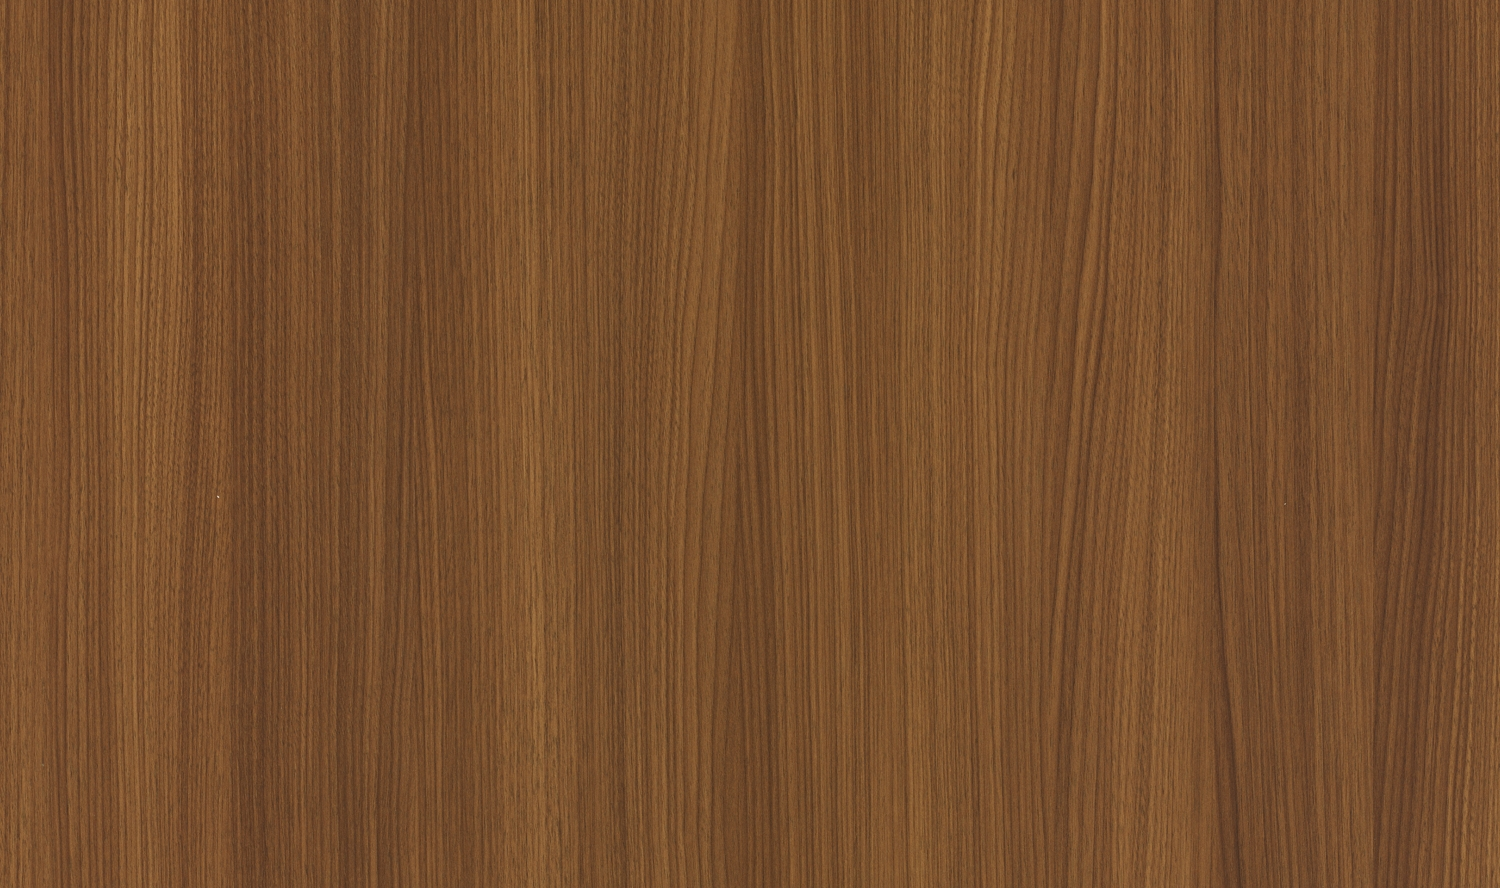 Latest Laminate Design For Bedroom Wardrobe - Sundek International